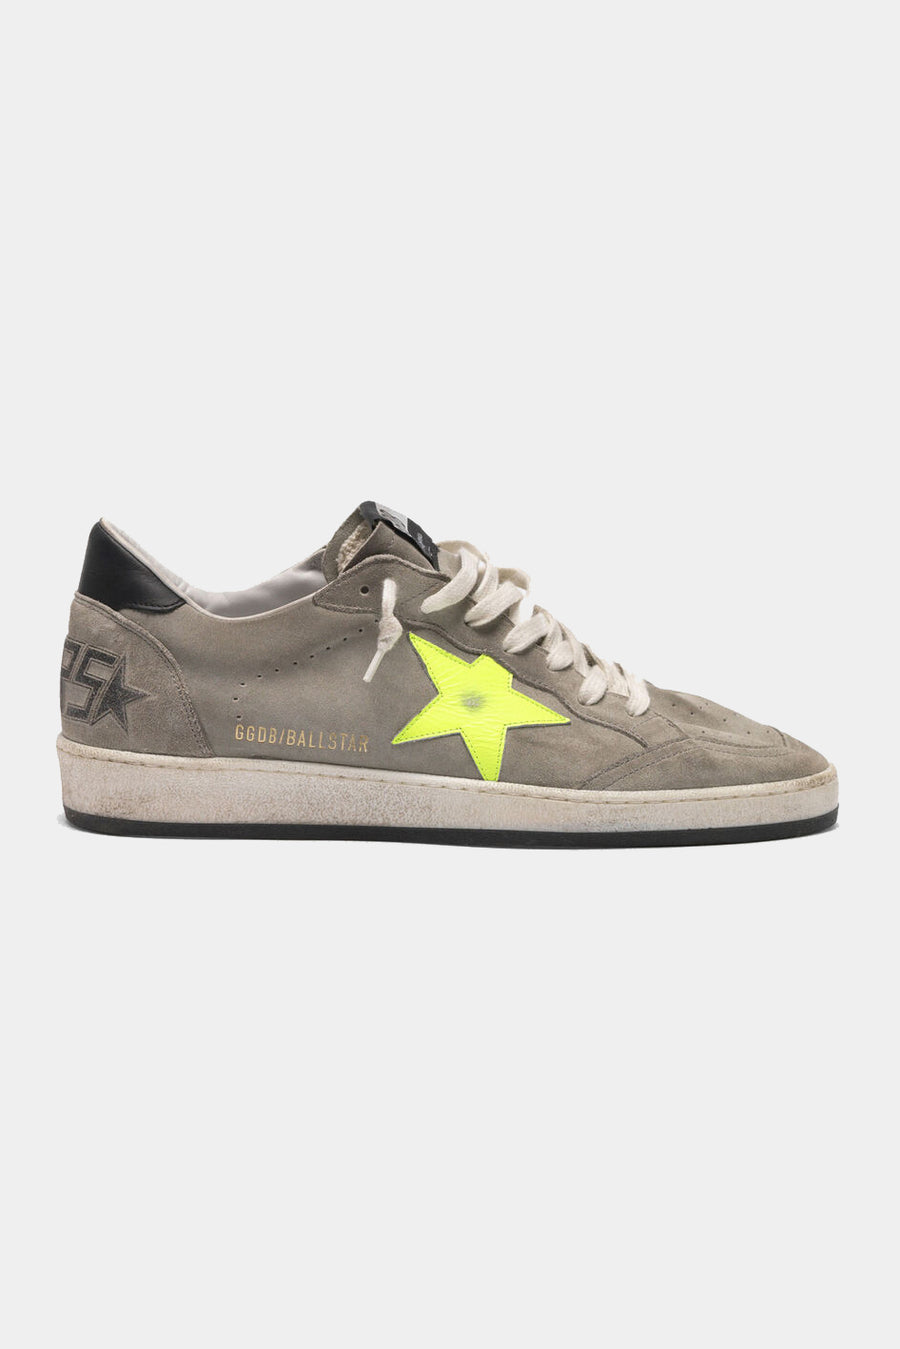 Ball Star - Waxed Ice Suede Yellow Star - Pavilion